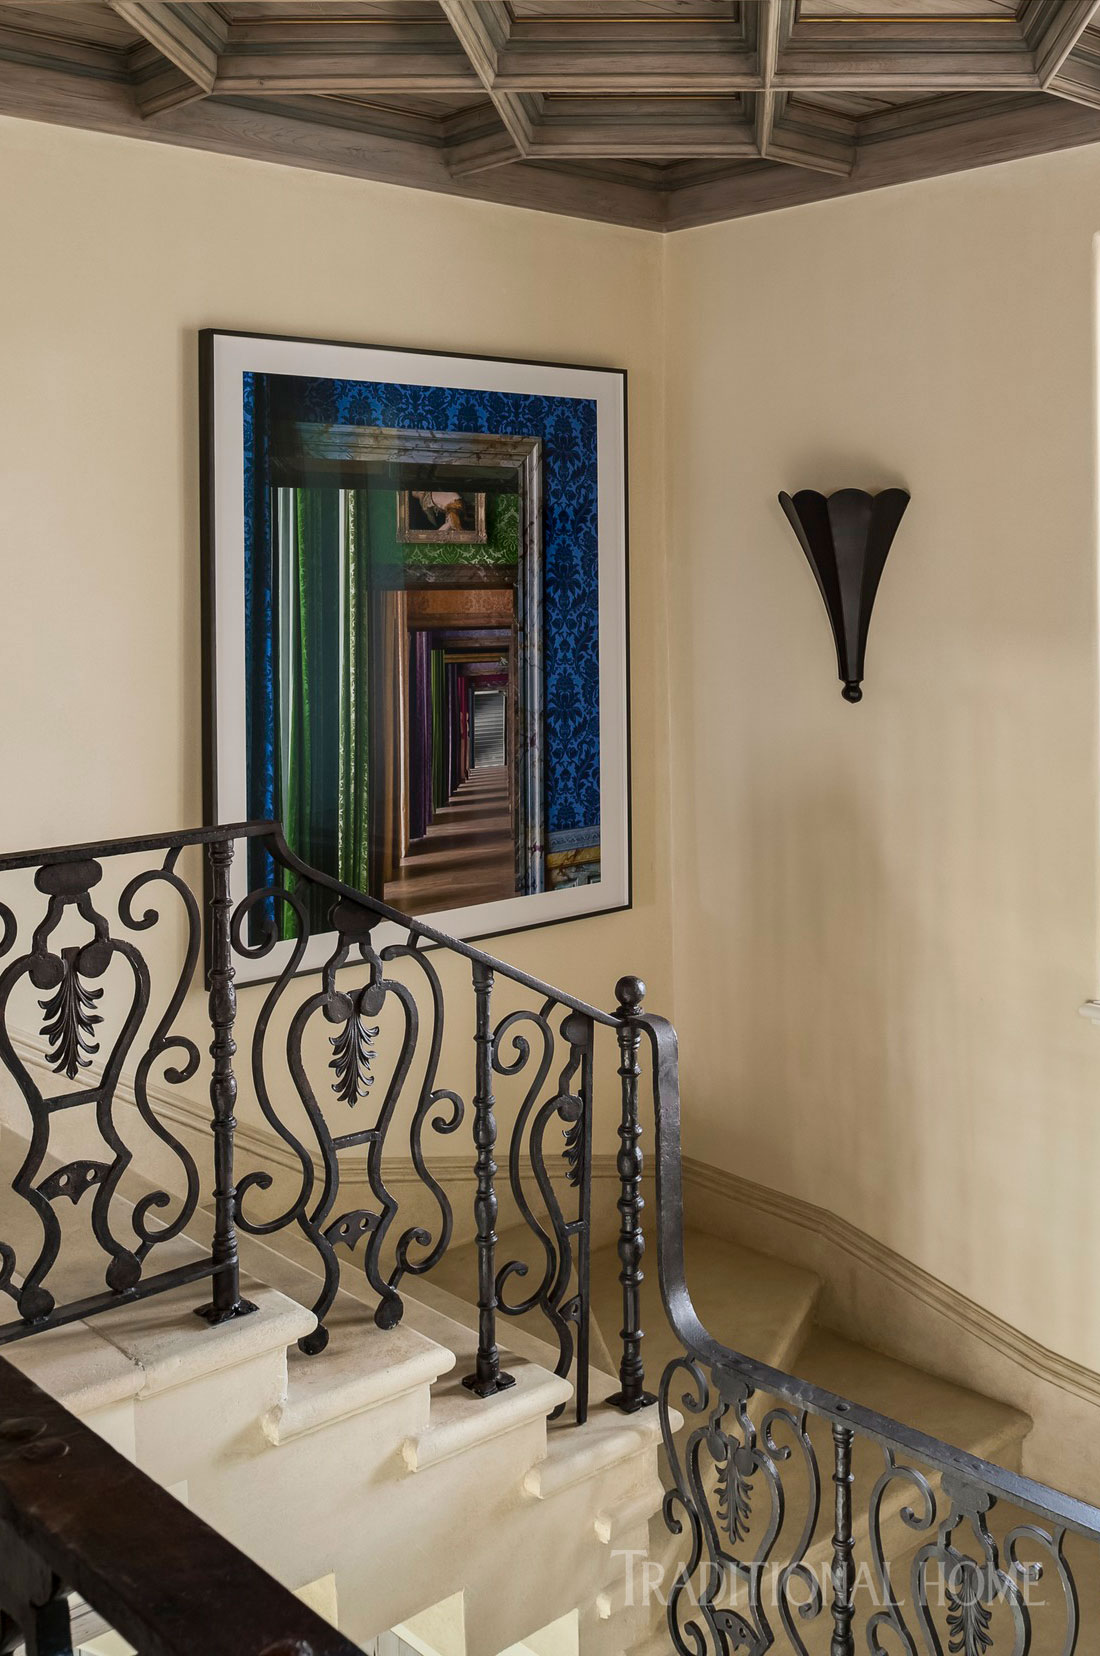 stairway with scallop sconced railing and framed photograph